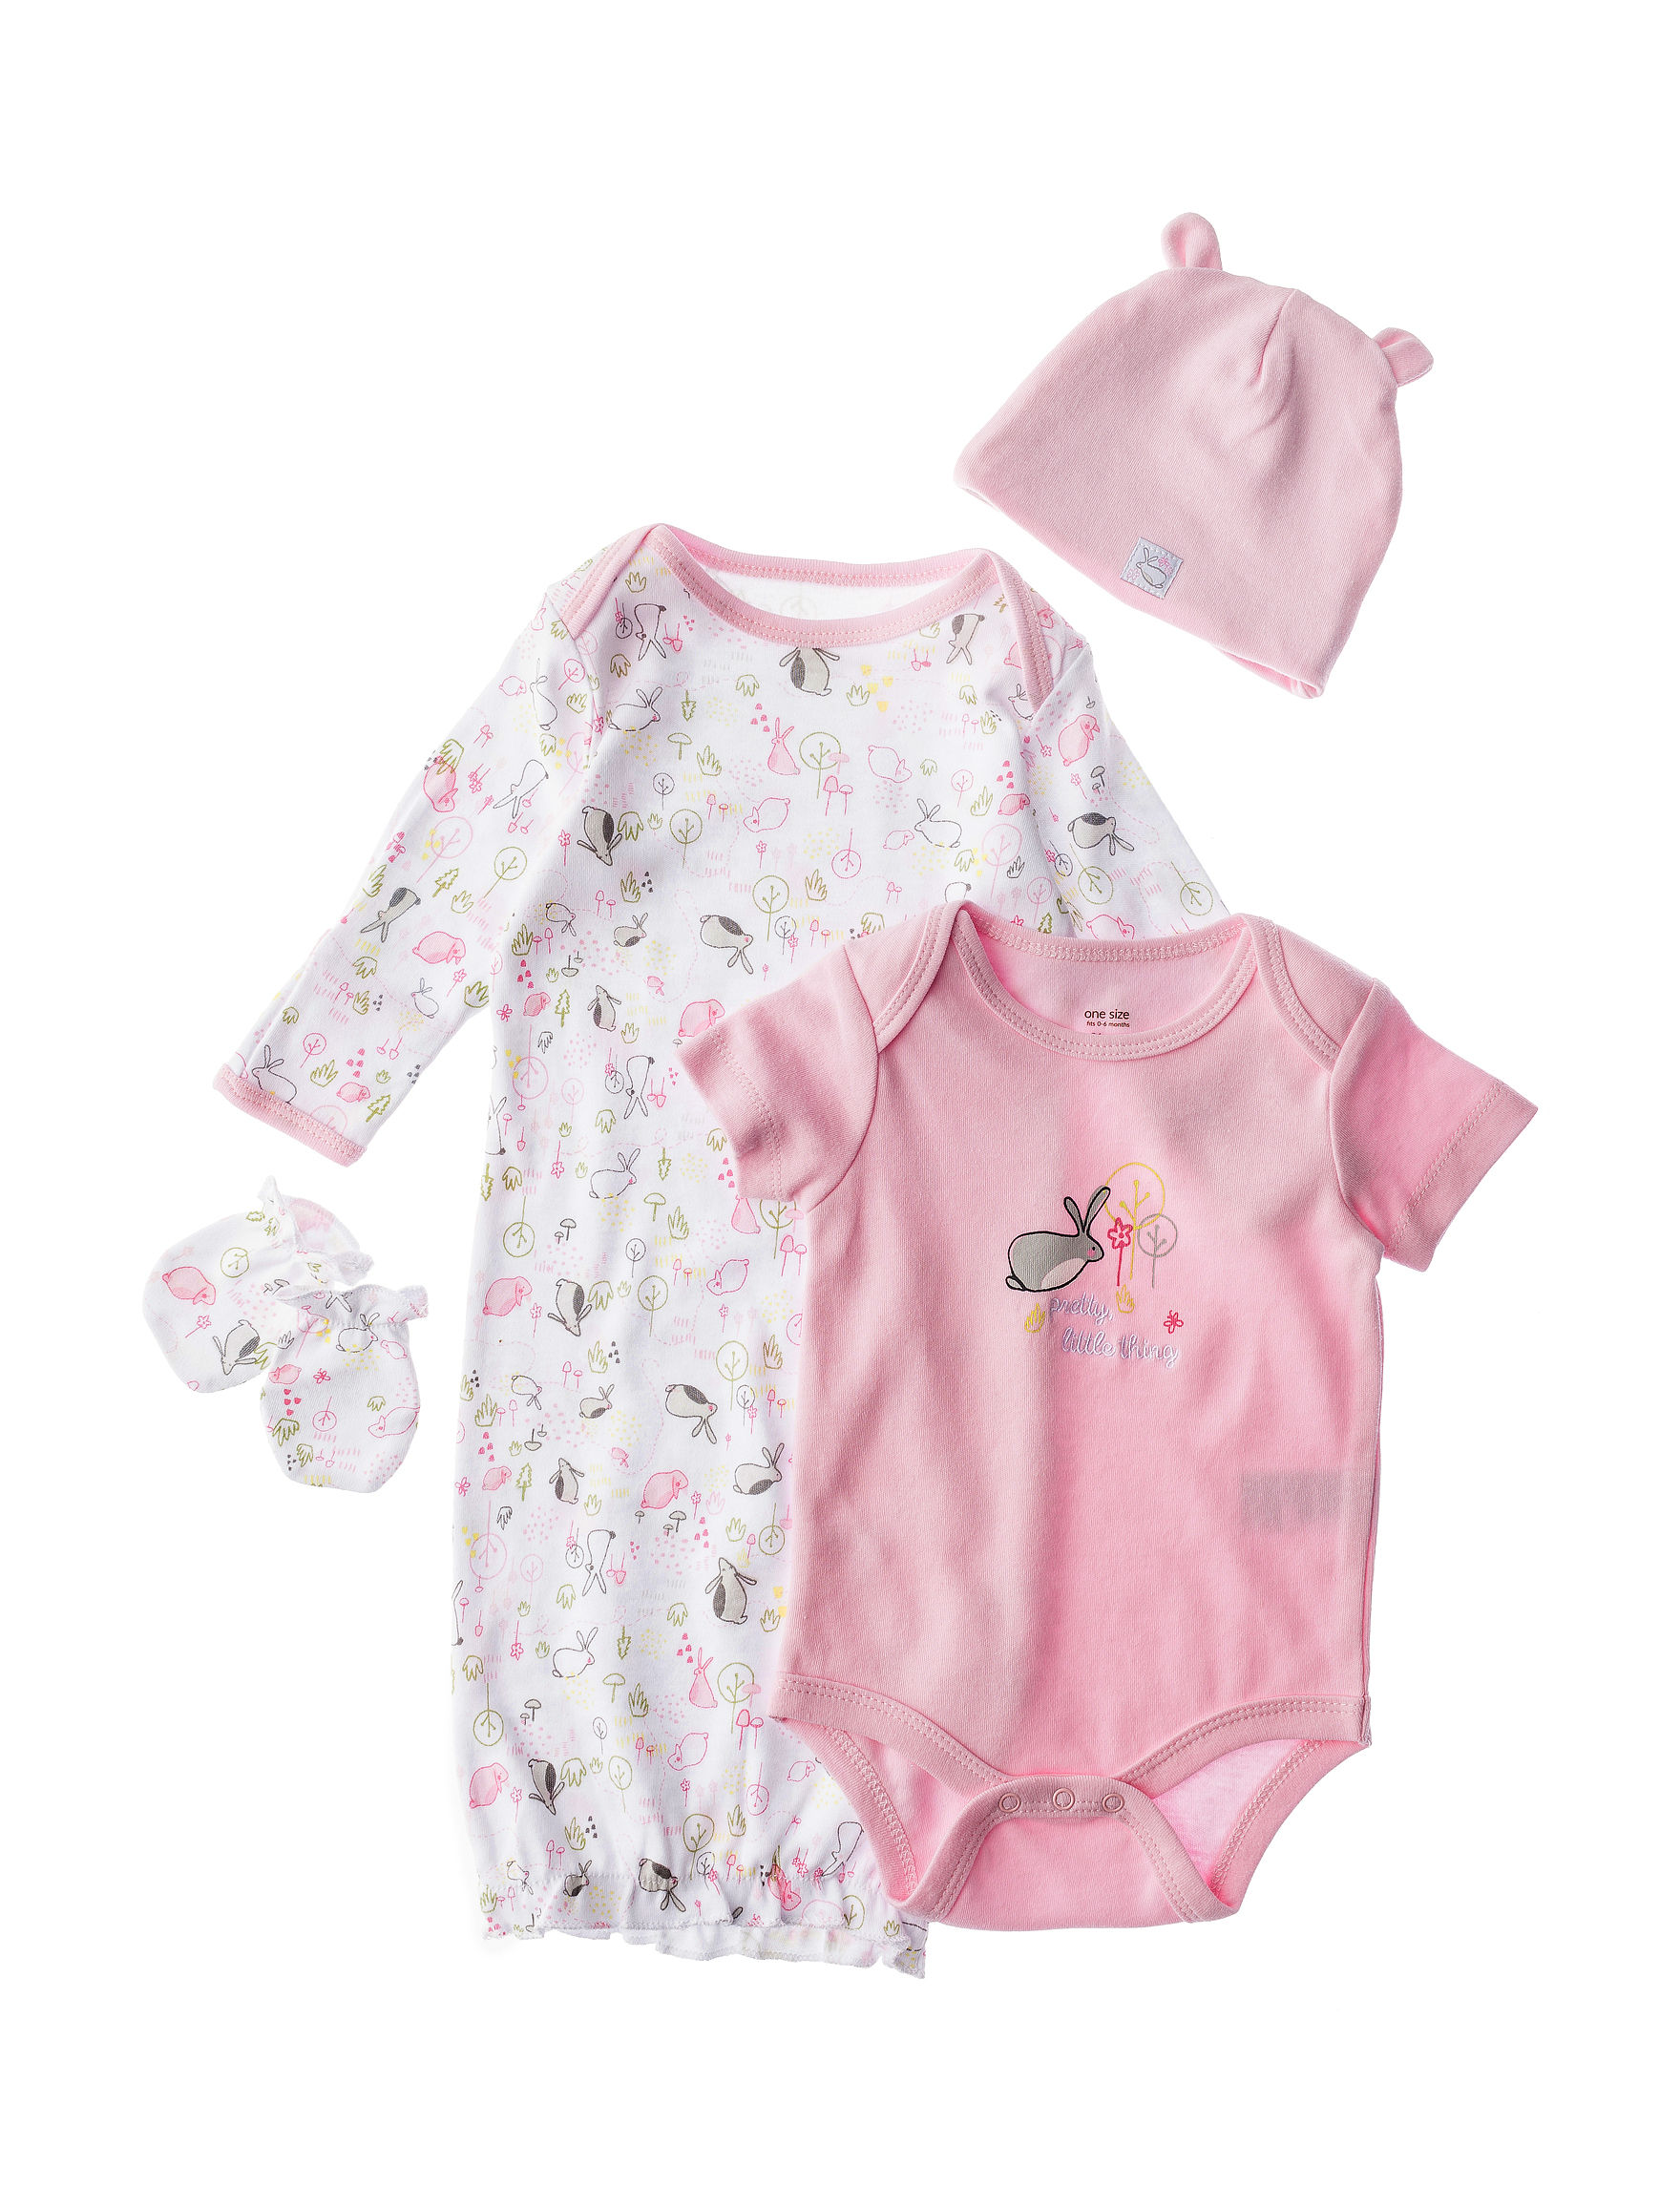 Baby Starters 2 pc Bunny Gown With Cap & Glove Set Baby 0 6 Mos